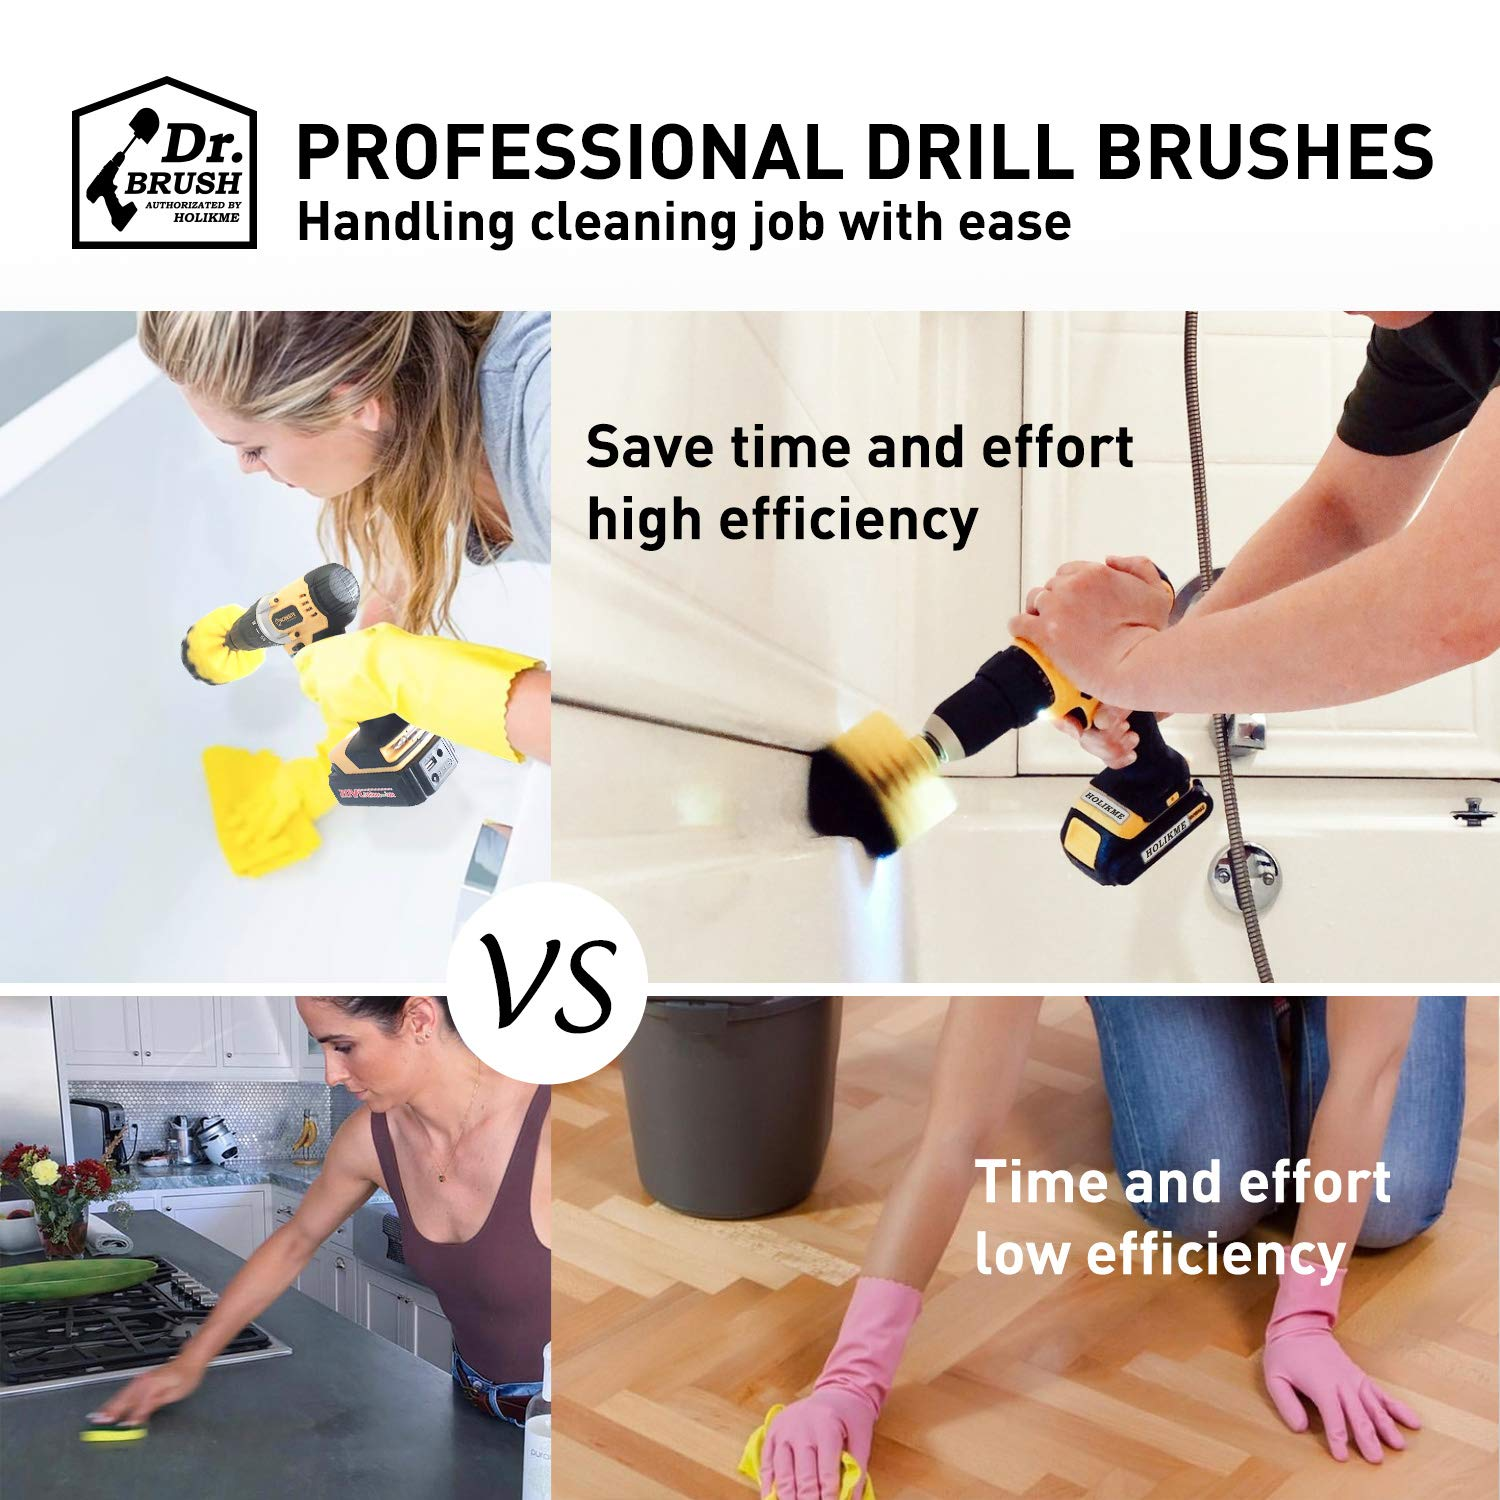 Holikme 14Piece Drill Brush Attachments Set, Scrub Pads & Sponge, Power Scrubber Brush with Extend Long Attachment All purpose Clean for Grout, Tiles, Sinks, Bathtub, Bathroom, Kitchen & Automobile by Holikme (Image #2)